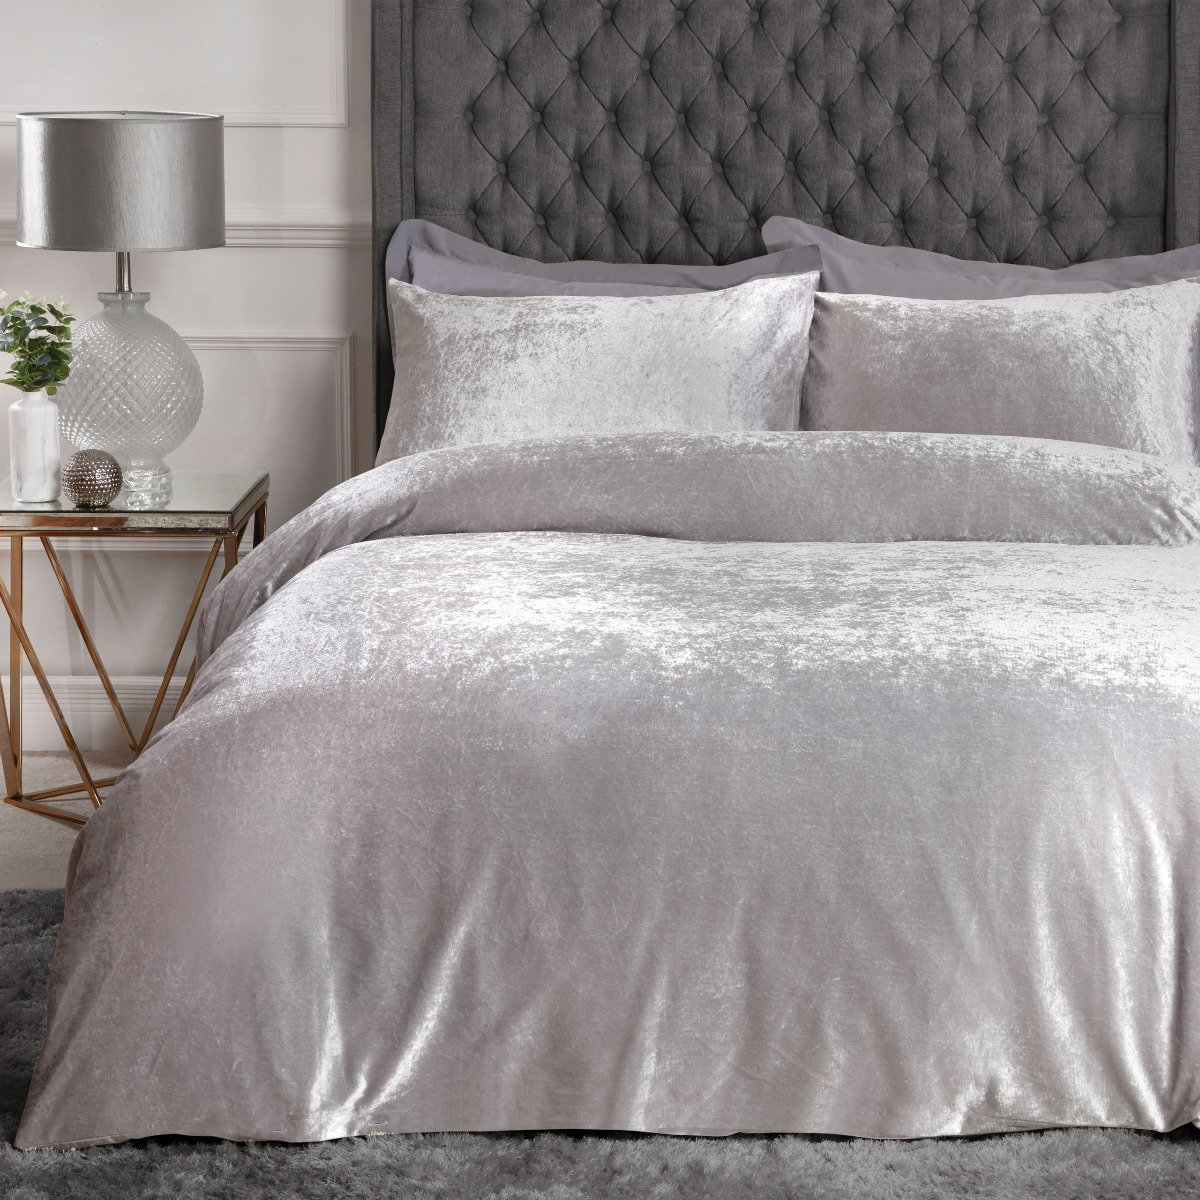 Crushed Velvet Bedding Set Sleepdown Official Uk Duvet Cover Sets Bedding Linen